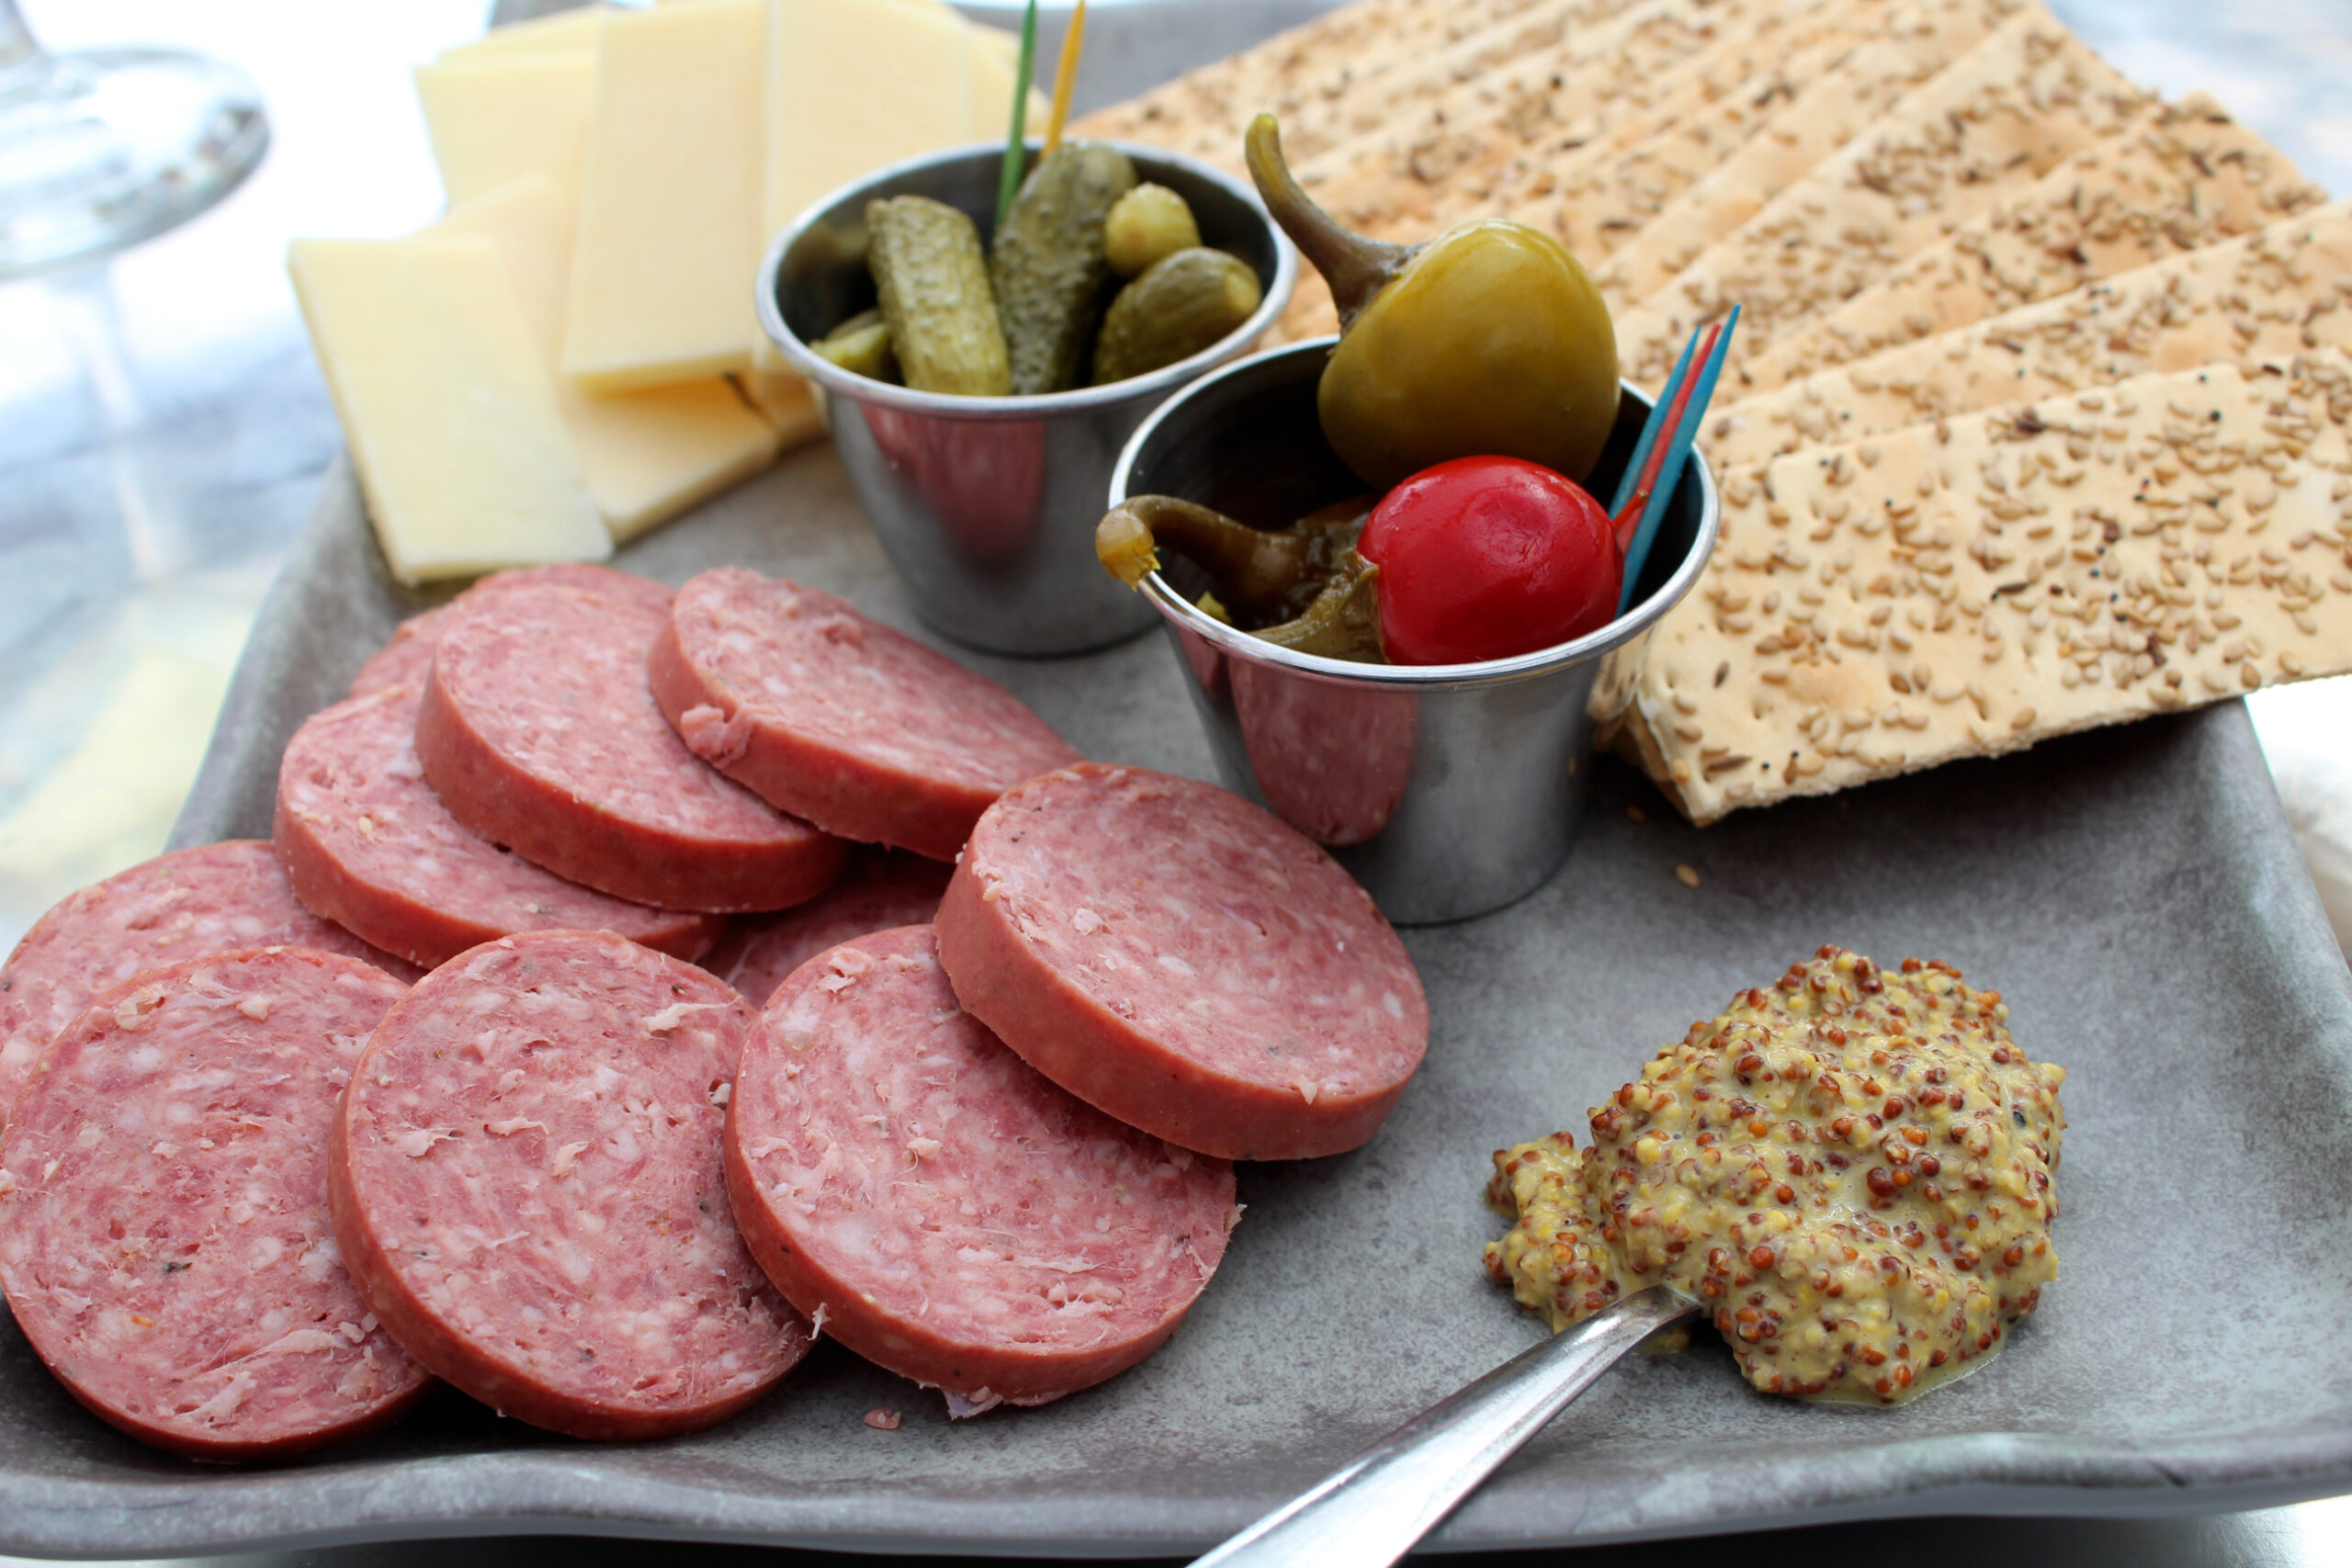 Individual charcuterie boards are fun for small outdoor parties